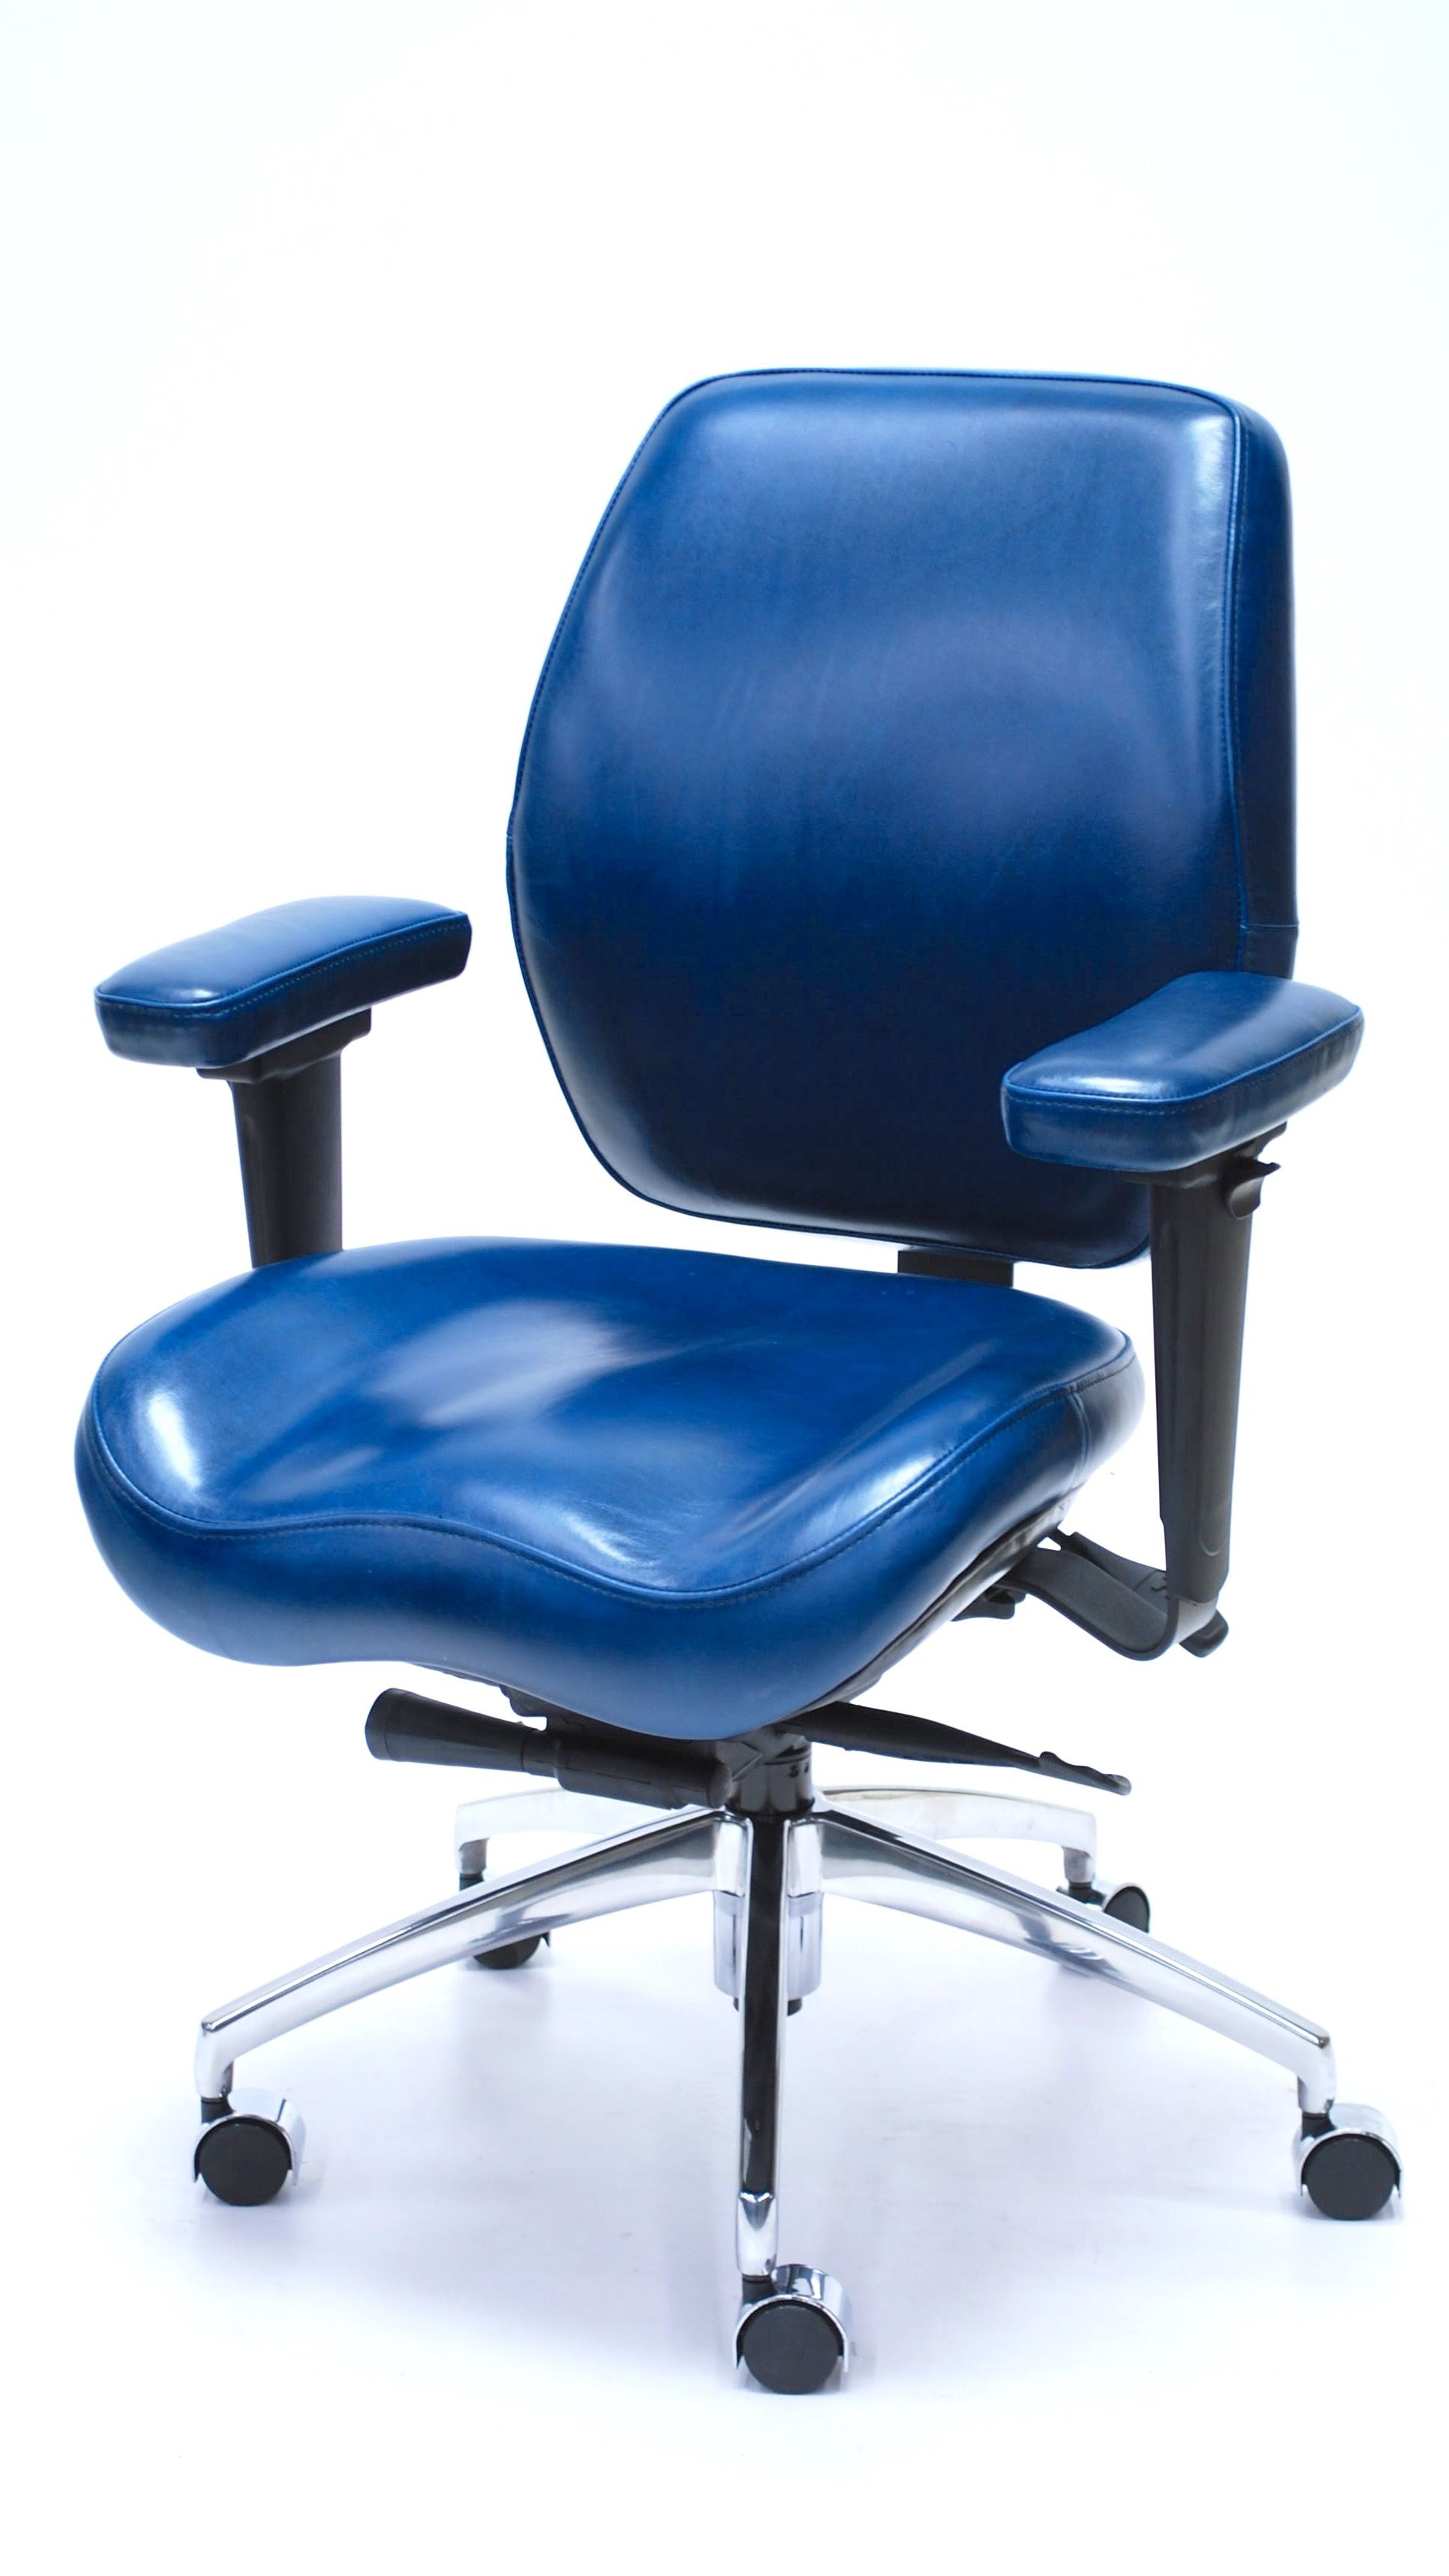 desk chair made fishing chairs with rod holders lifeform premium leather full function ergonomics in canada